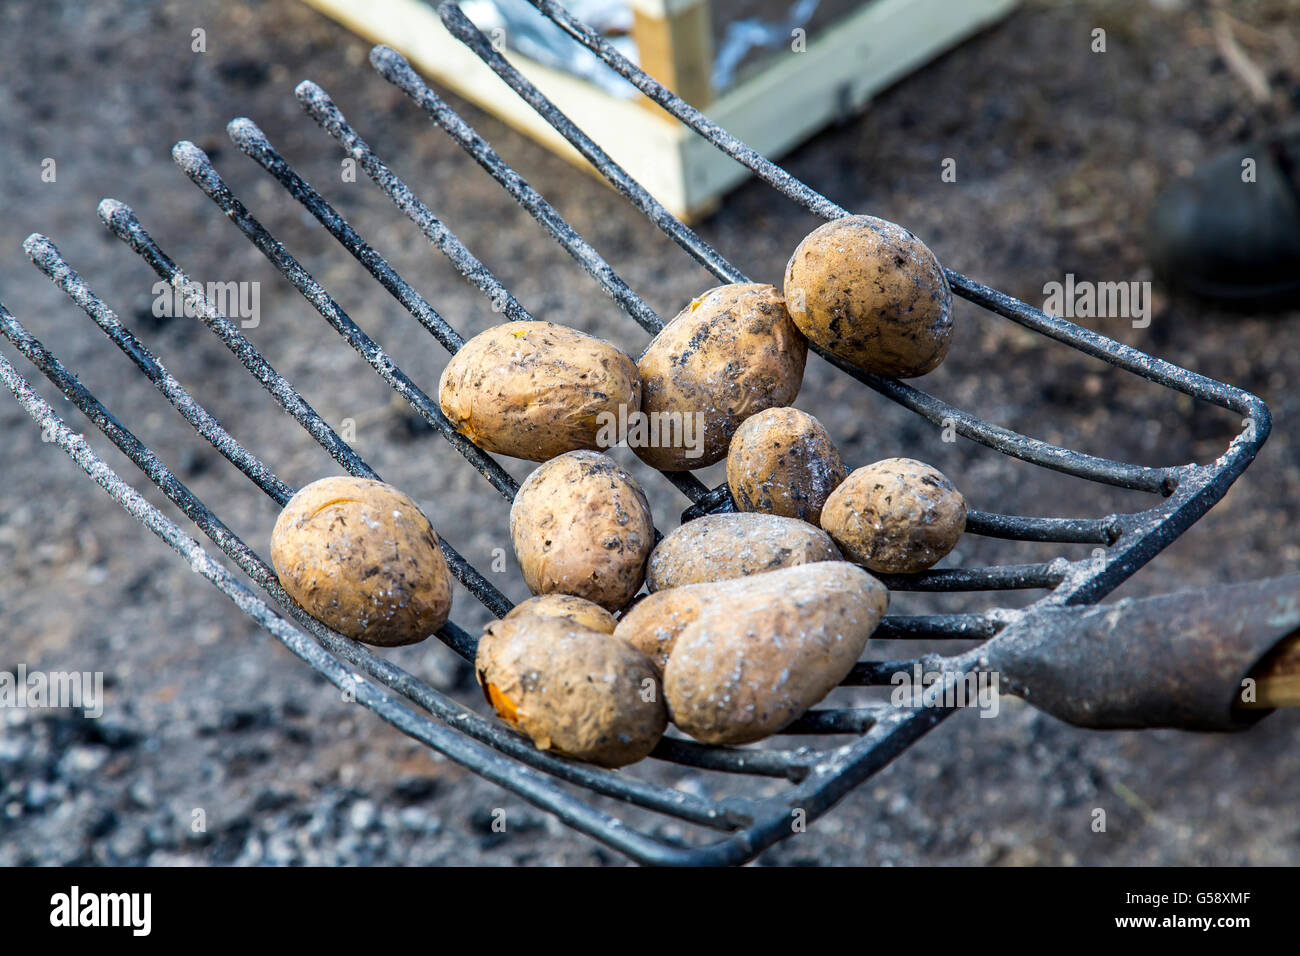 Potatoes, baked in the embers of a campfire, food, burning ash, glow, - Stock Image